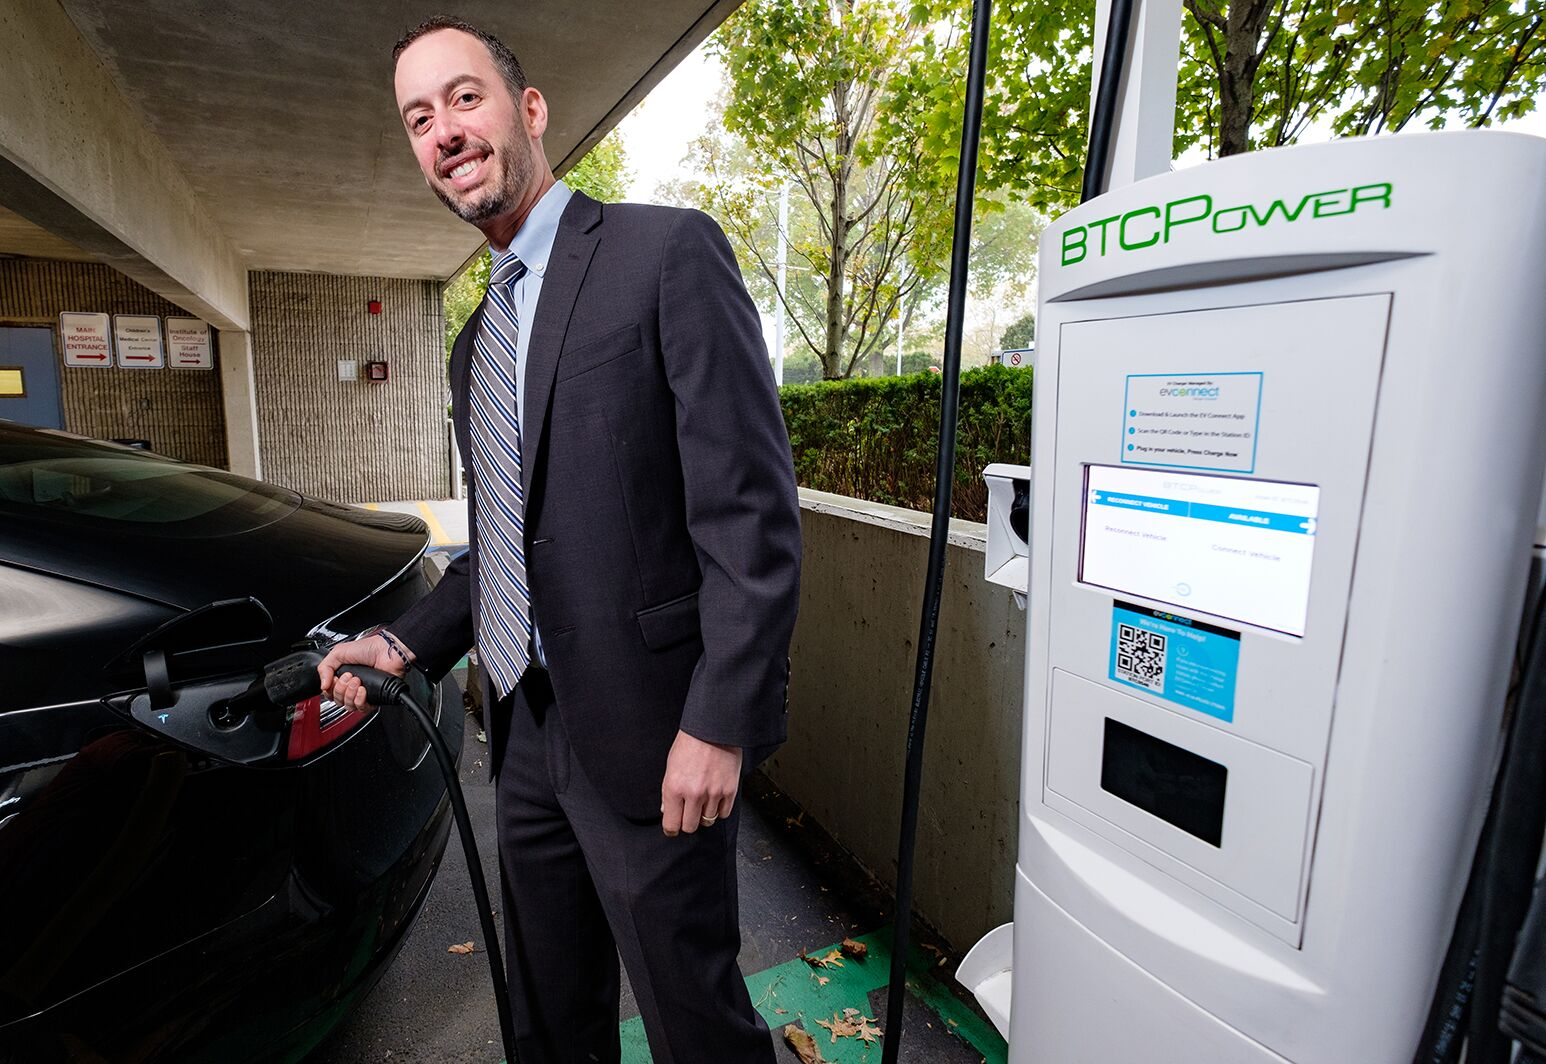 Long Island Jewish Medical Center Executive Director Michael Goldberg plugs in an electric car at one of the hospital's electric vehicle charging stations.